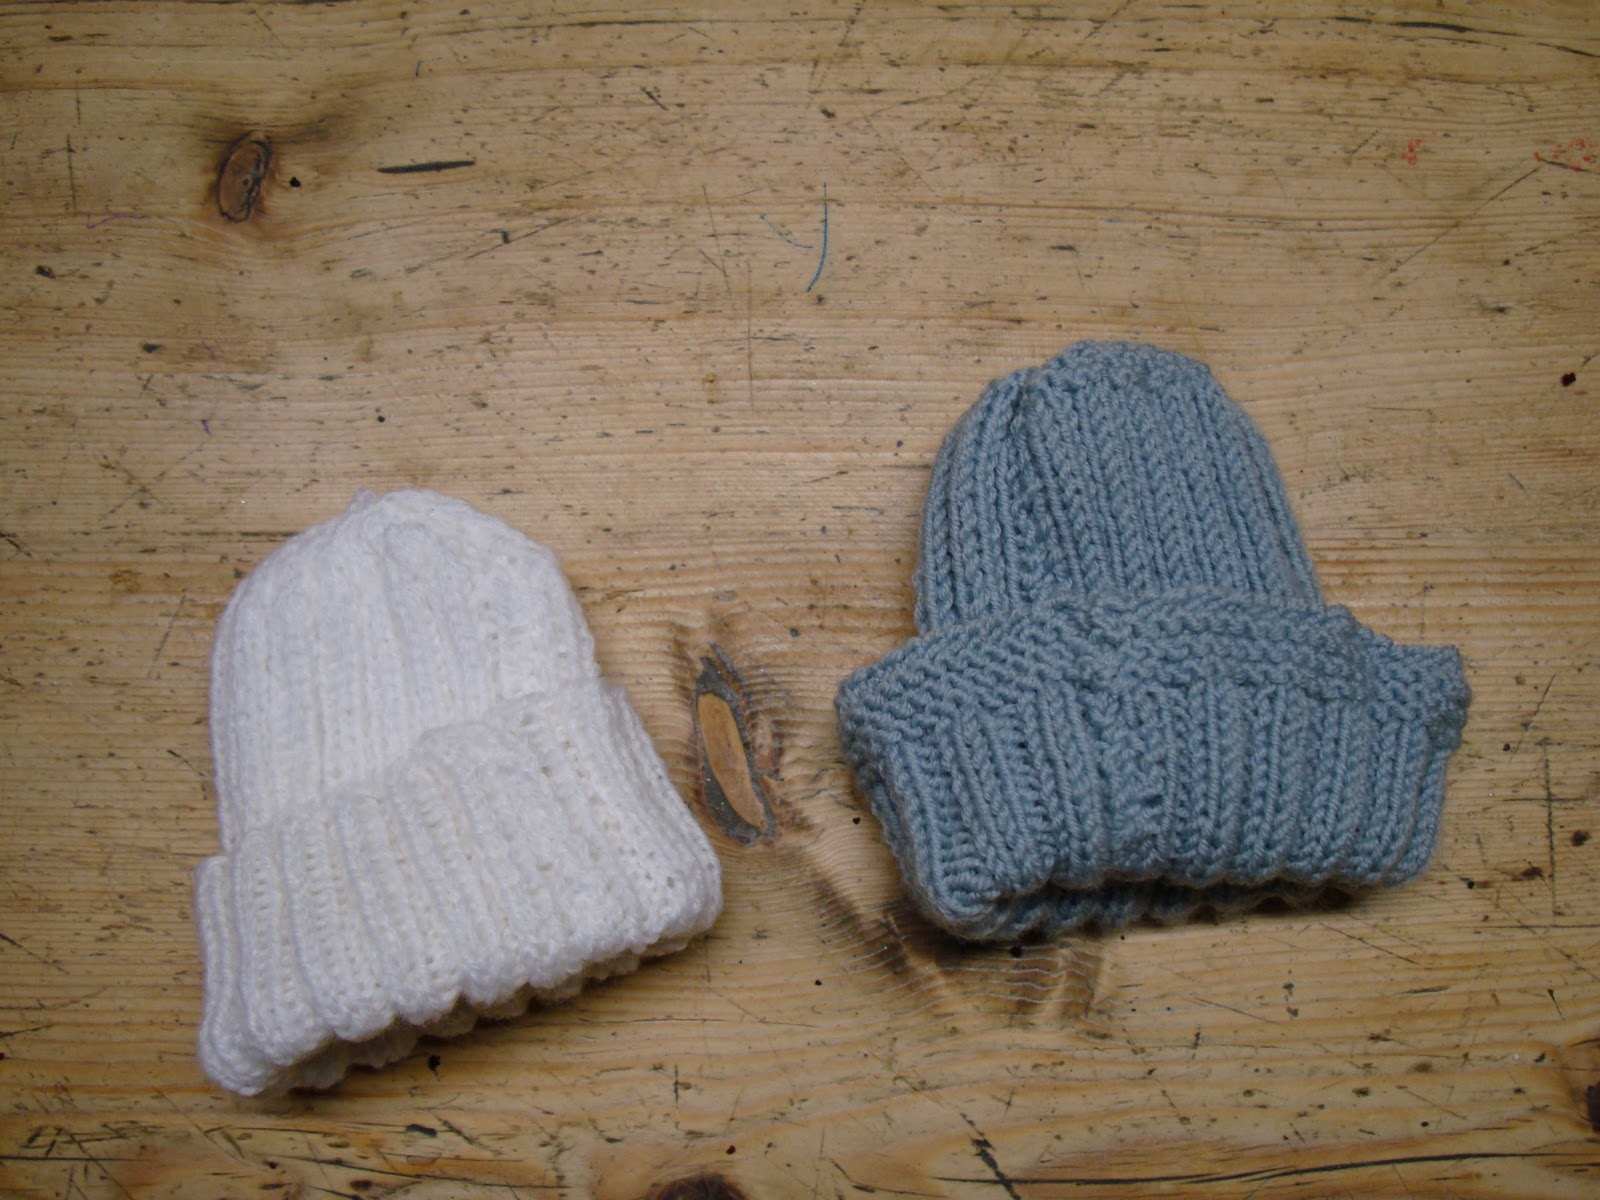 b2b80ffb6f9 Knit a hat for a premature baby - Knit For Peace